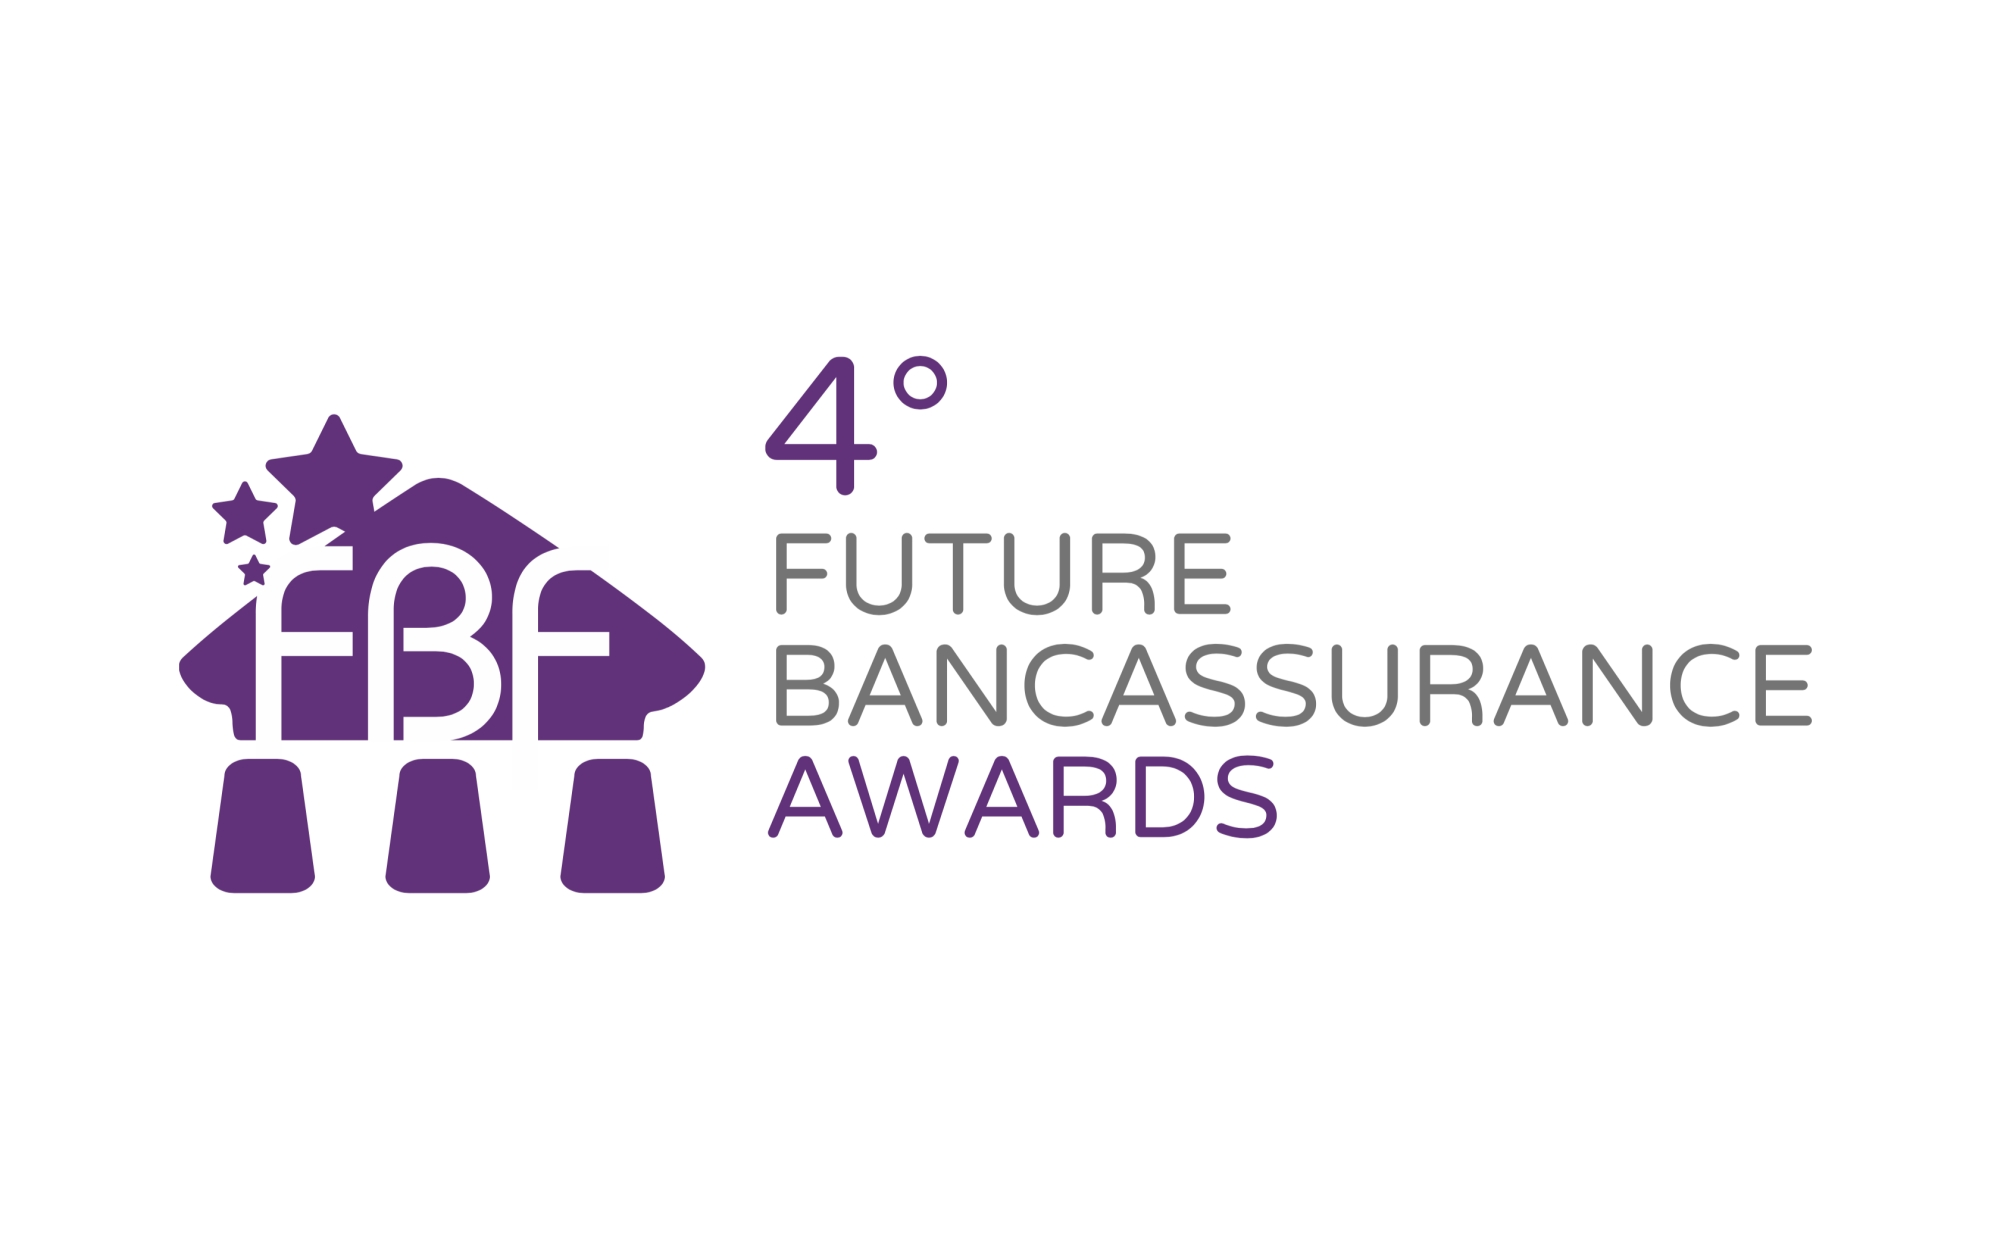 Future Bancassurance Awards 2018 HiRes